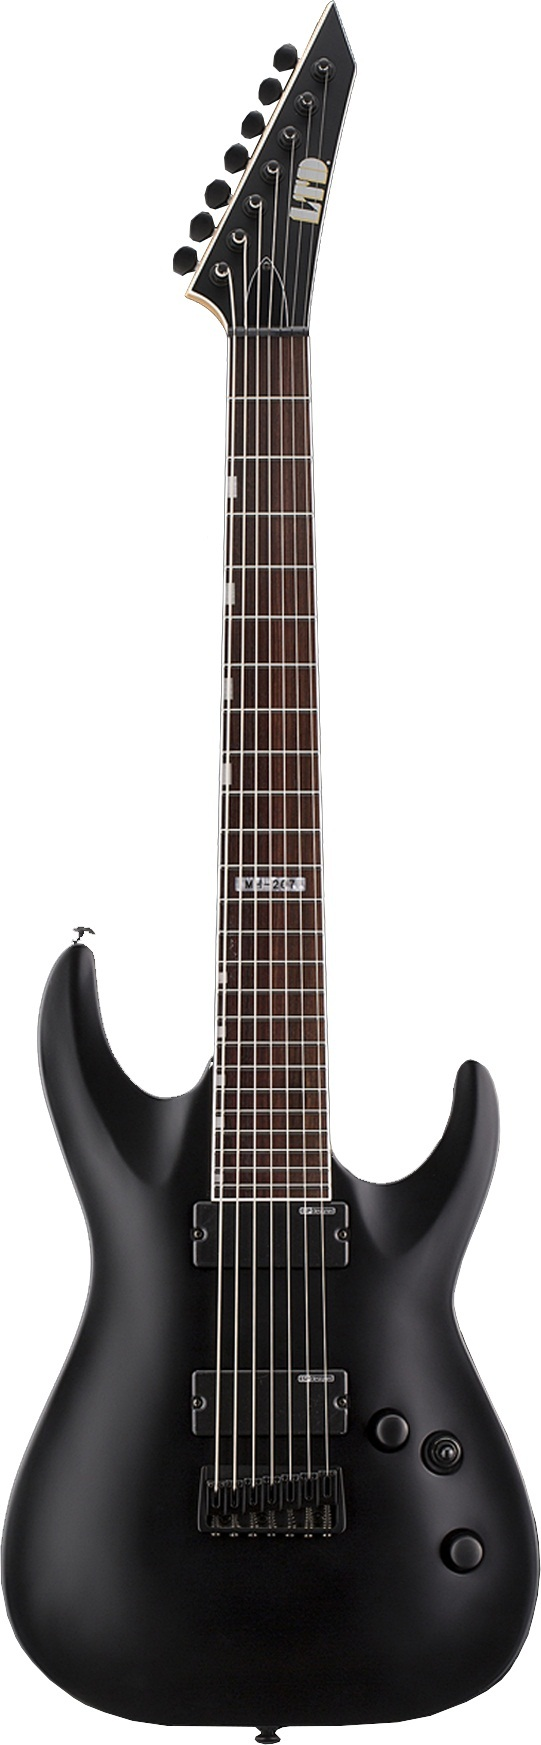 ESP LTD MH-207 BLKS Electric Guitar with Basswood Body and Black Satin Finish